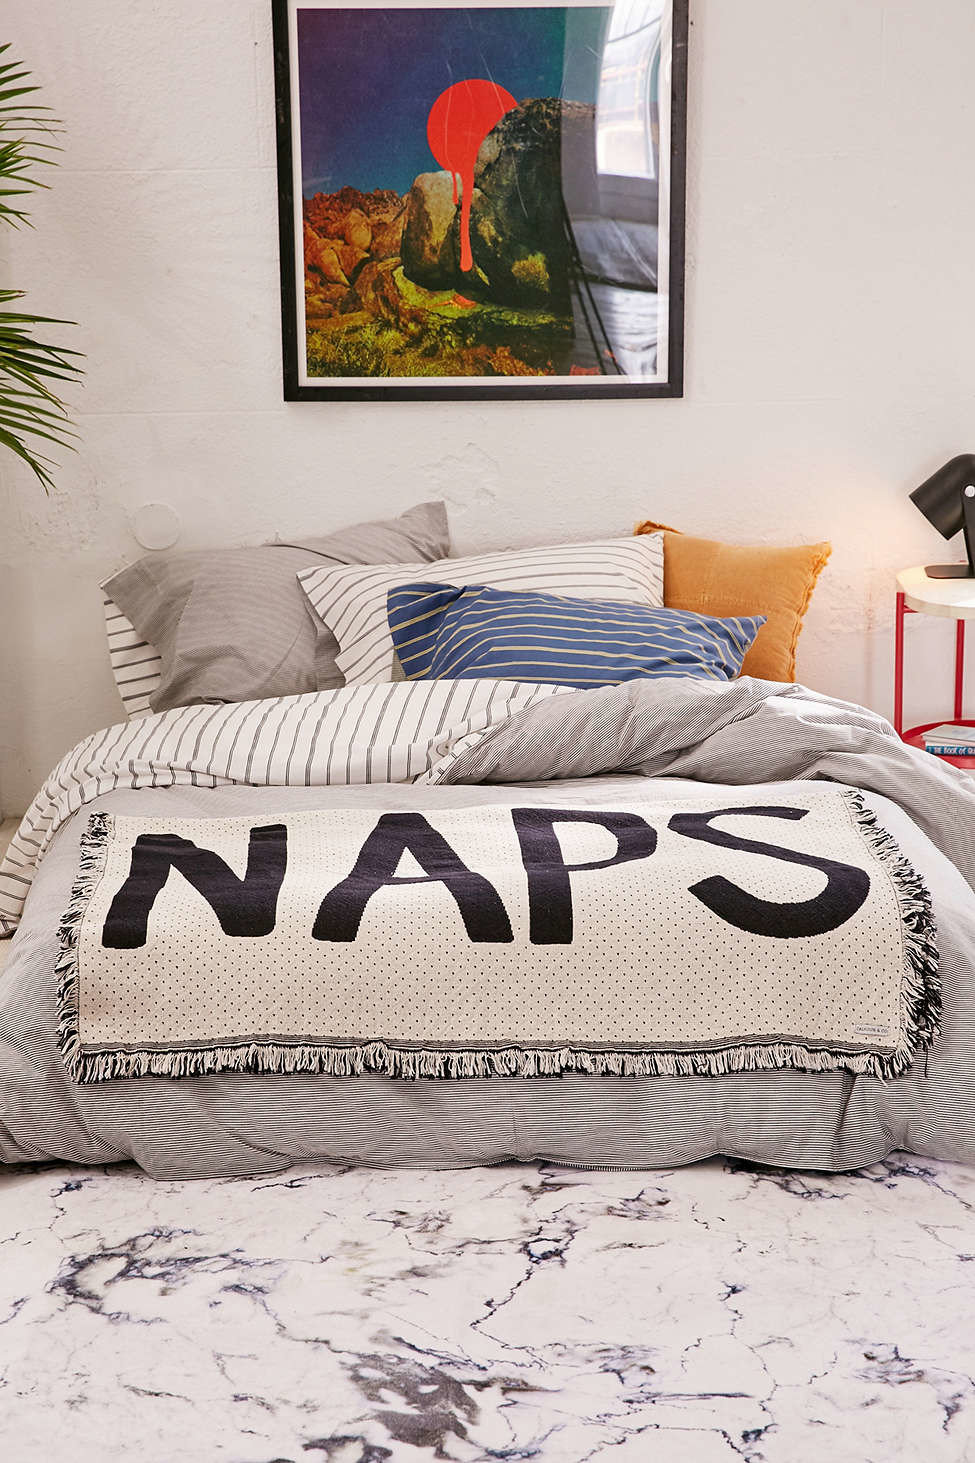 Style + Design Travel Shop bed indoor duvet cover bed sheet Bedroom room bed frame bedding furniture textile mattress linens interior design pillow cushion painting bedclothes